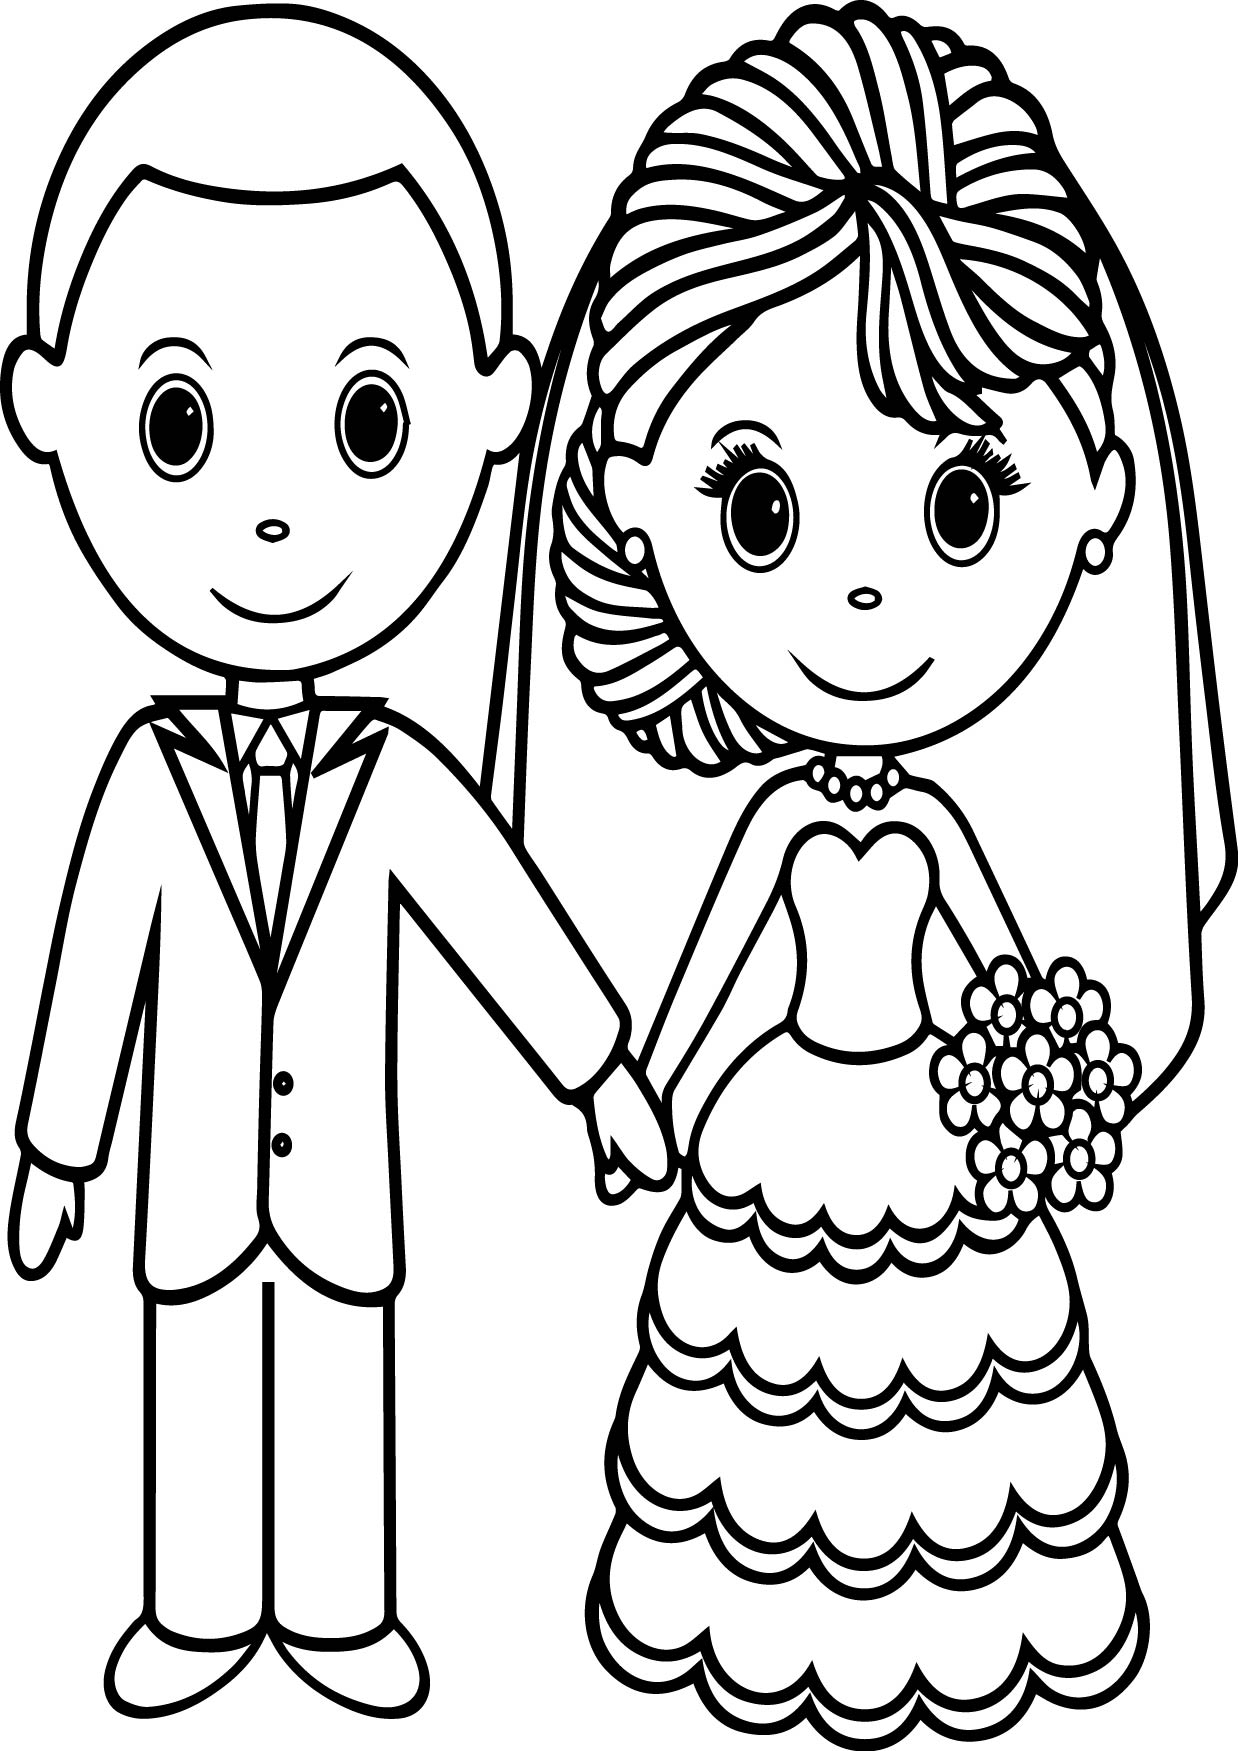 Wedding Coloring Pages Free Printable 12p - Free Download